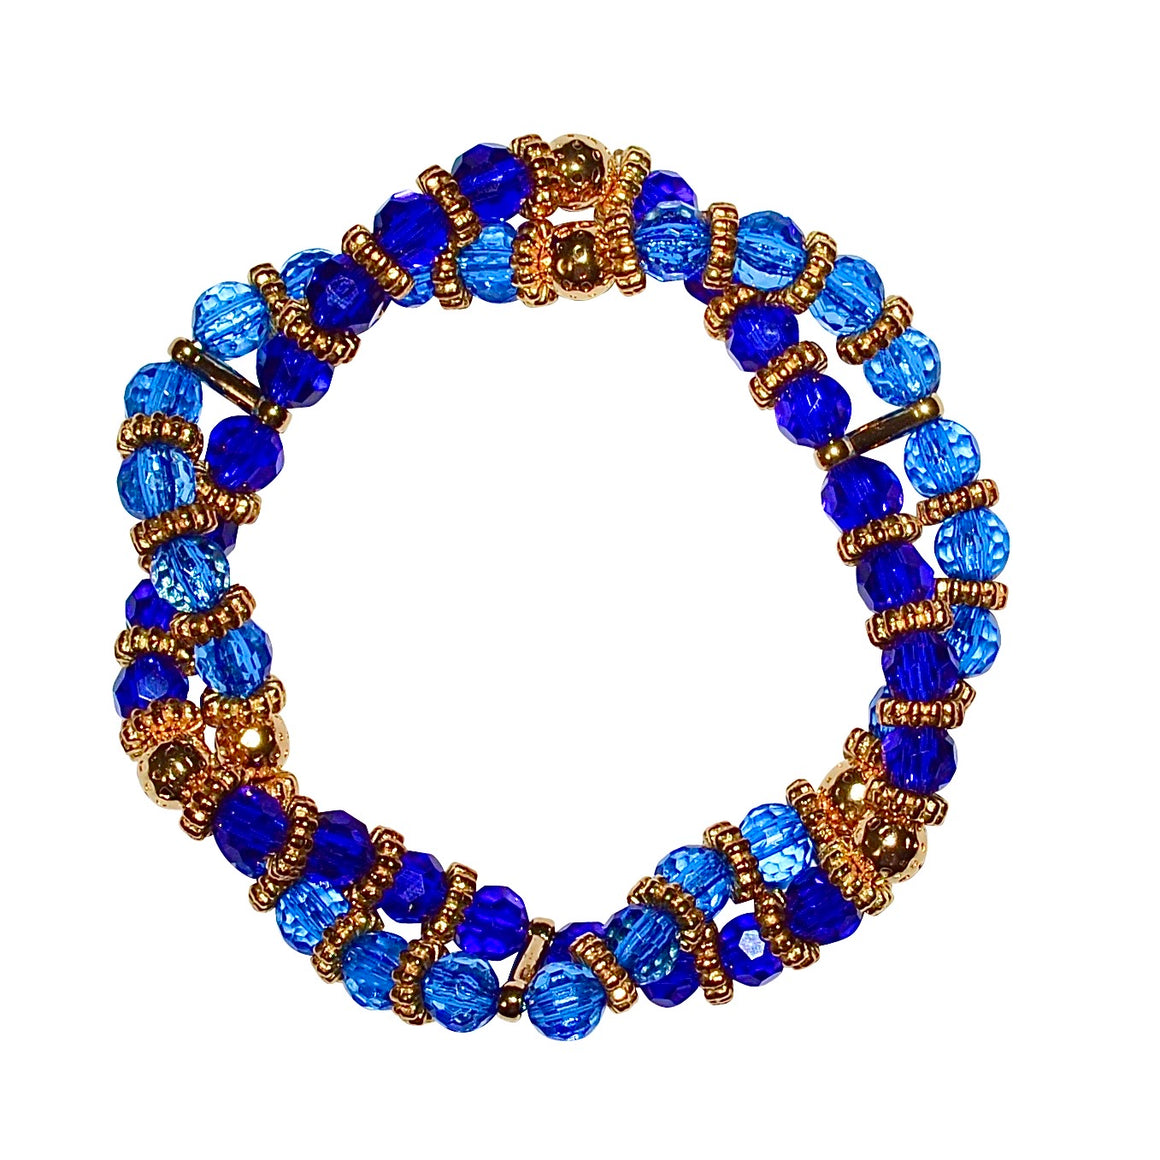 BIANCA LUCITE TWISTED BRACELET IN BLUE